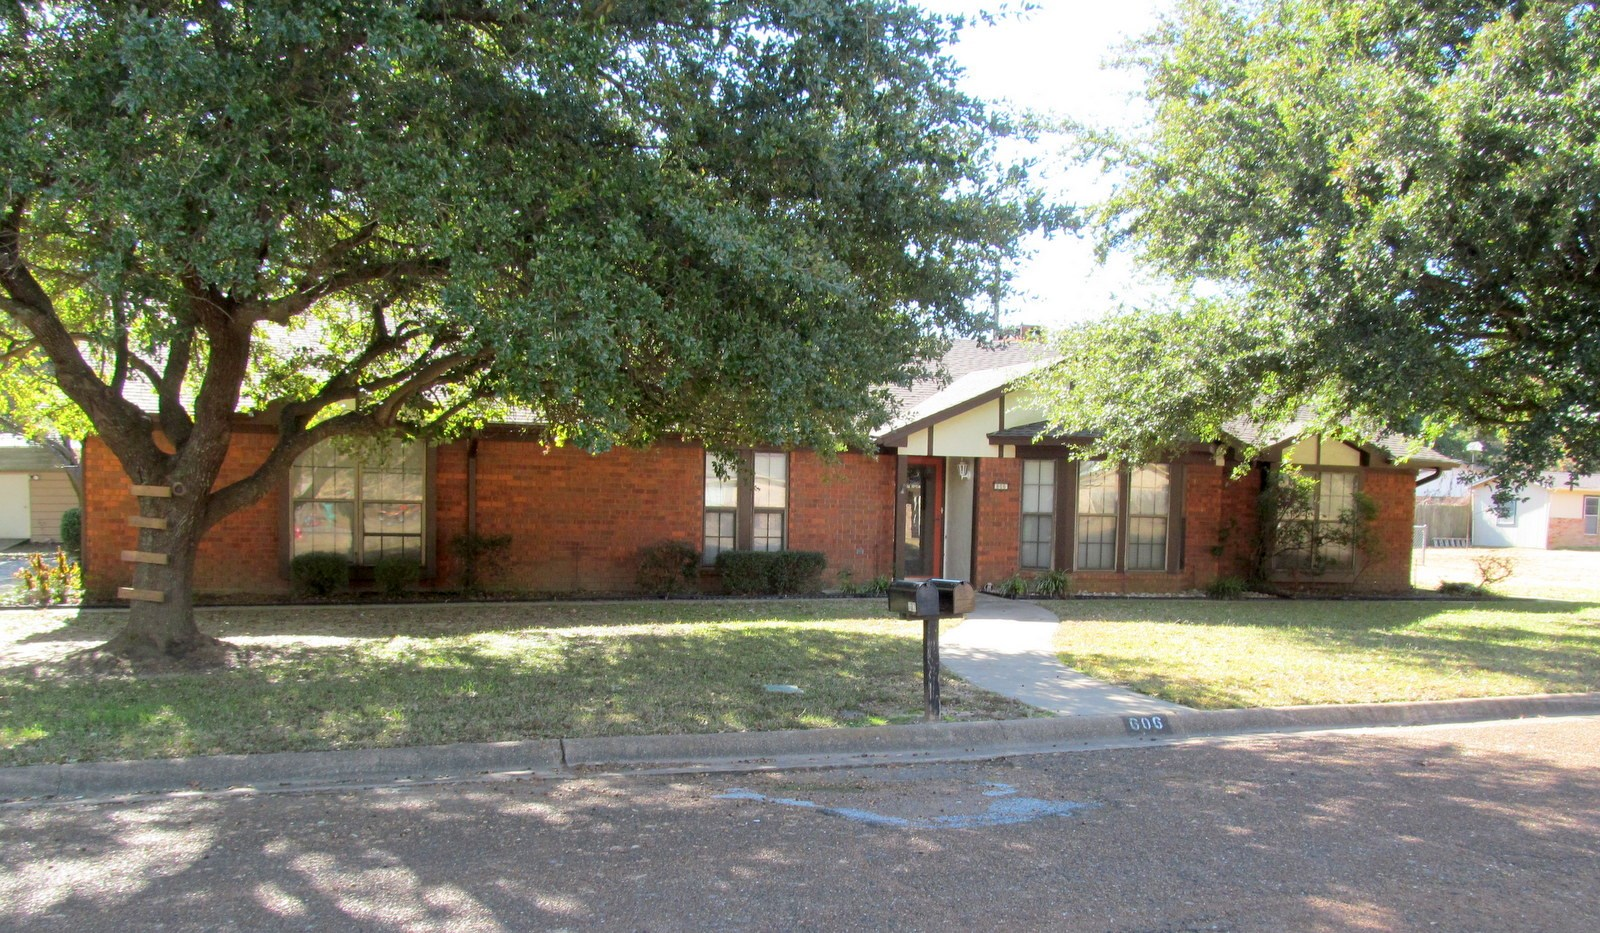 LARGE BRICK HOME ON LARGE LOT IN WINNSBORO, TX - WOOD COUNTY